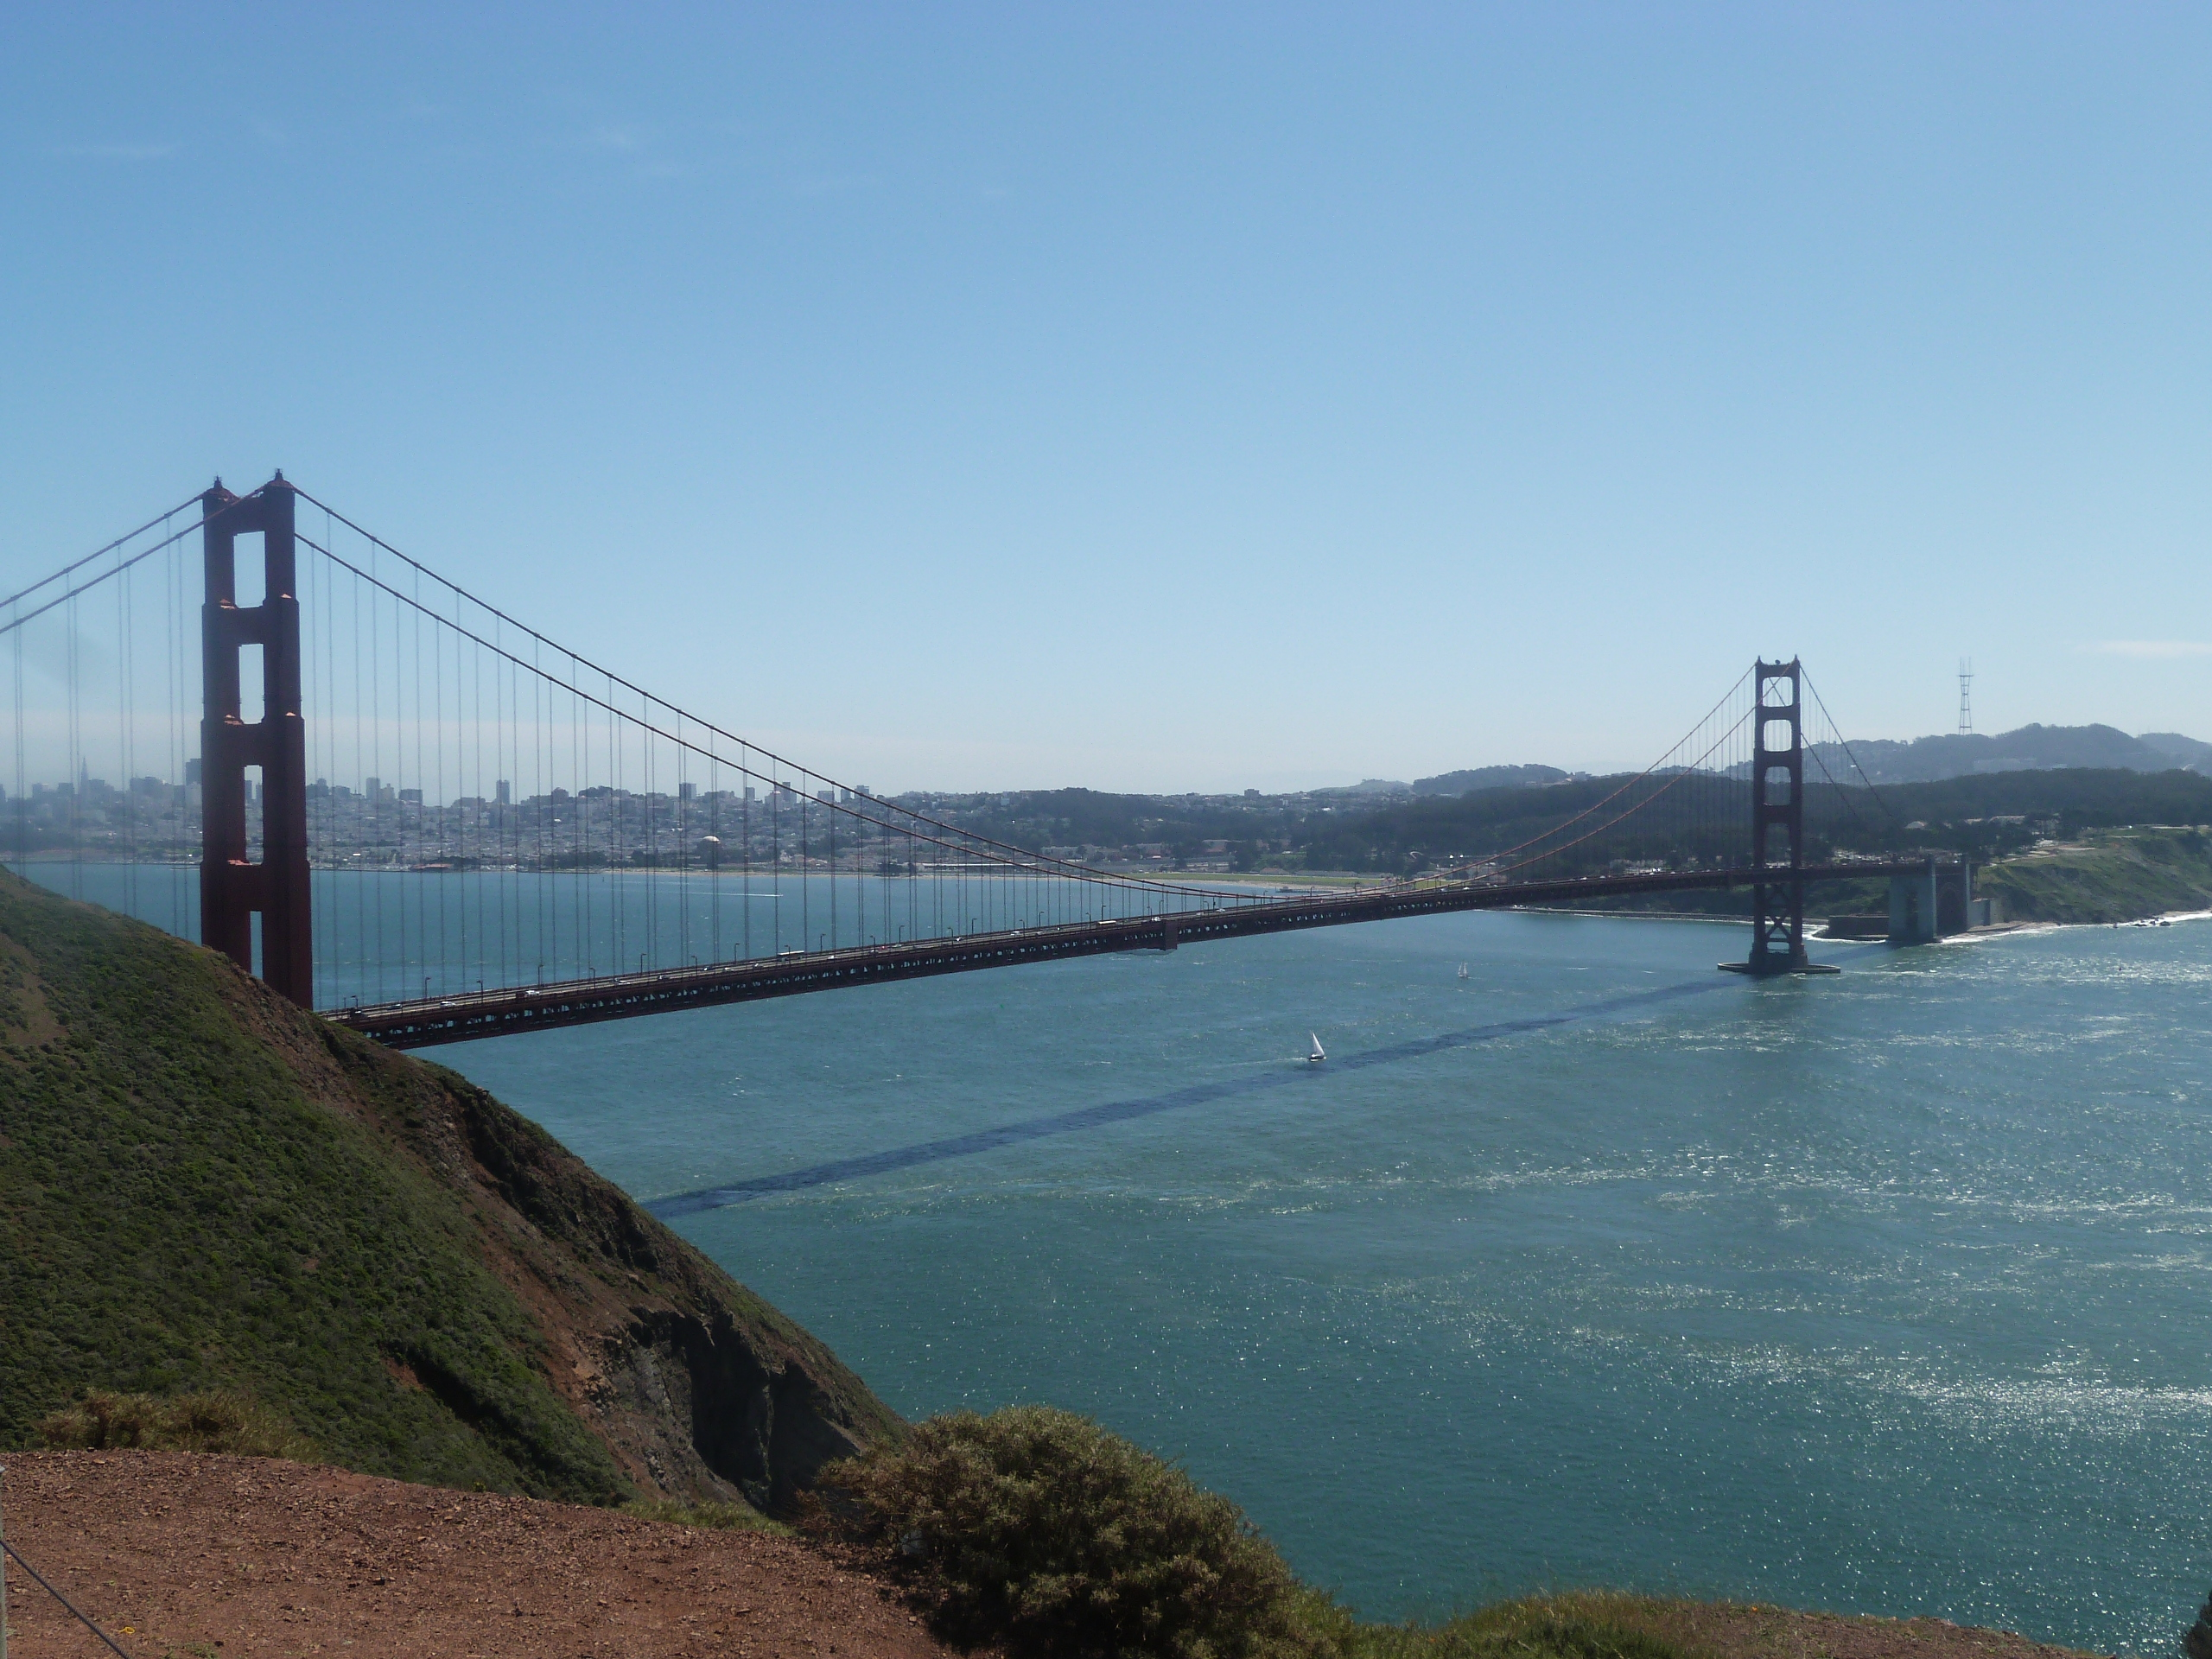 Marin Headlands - Golden Gate Bridge, San Francisco